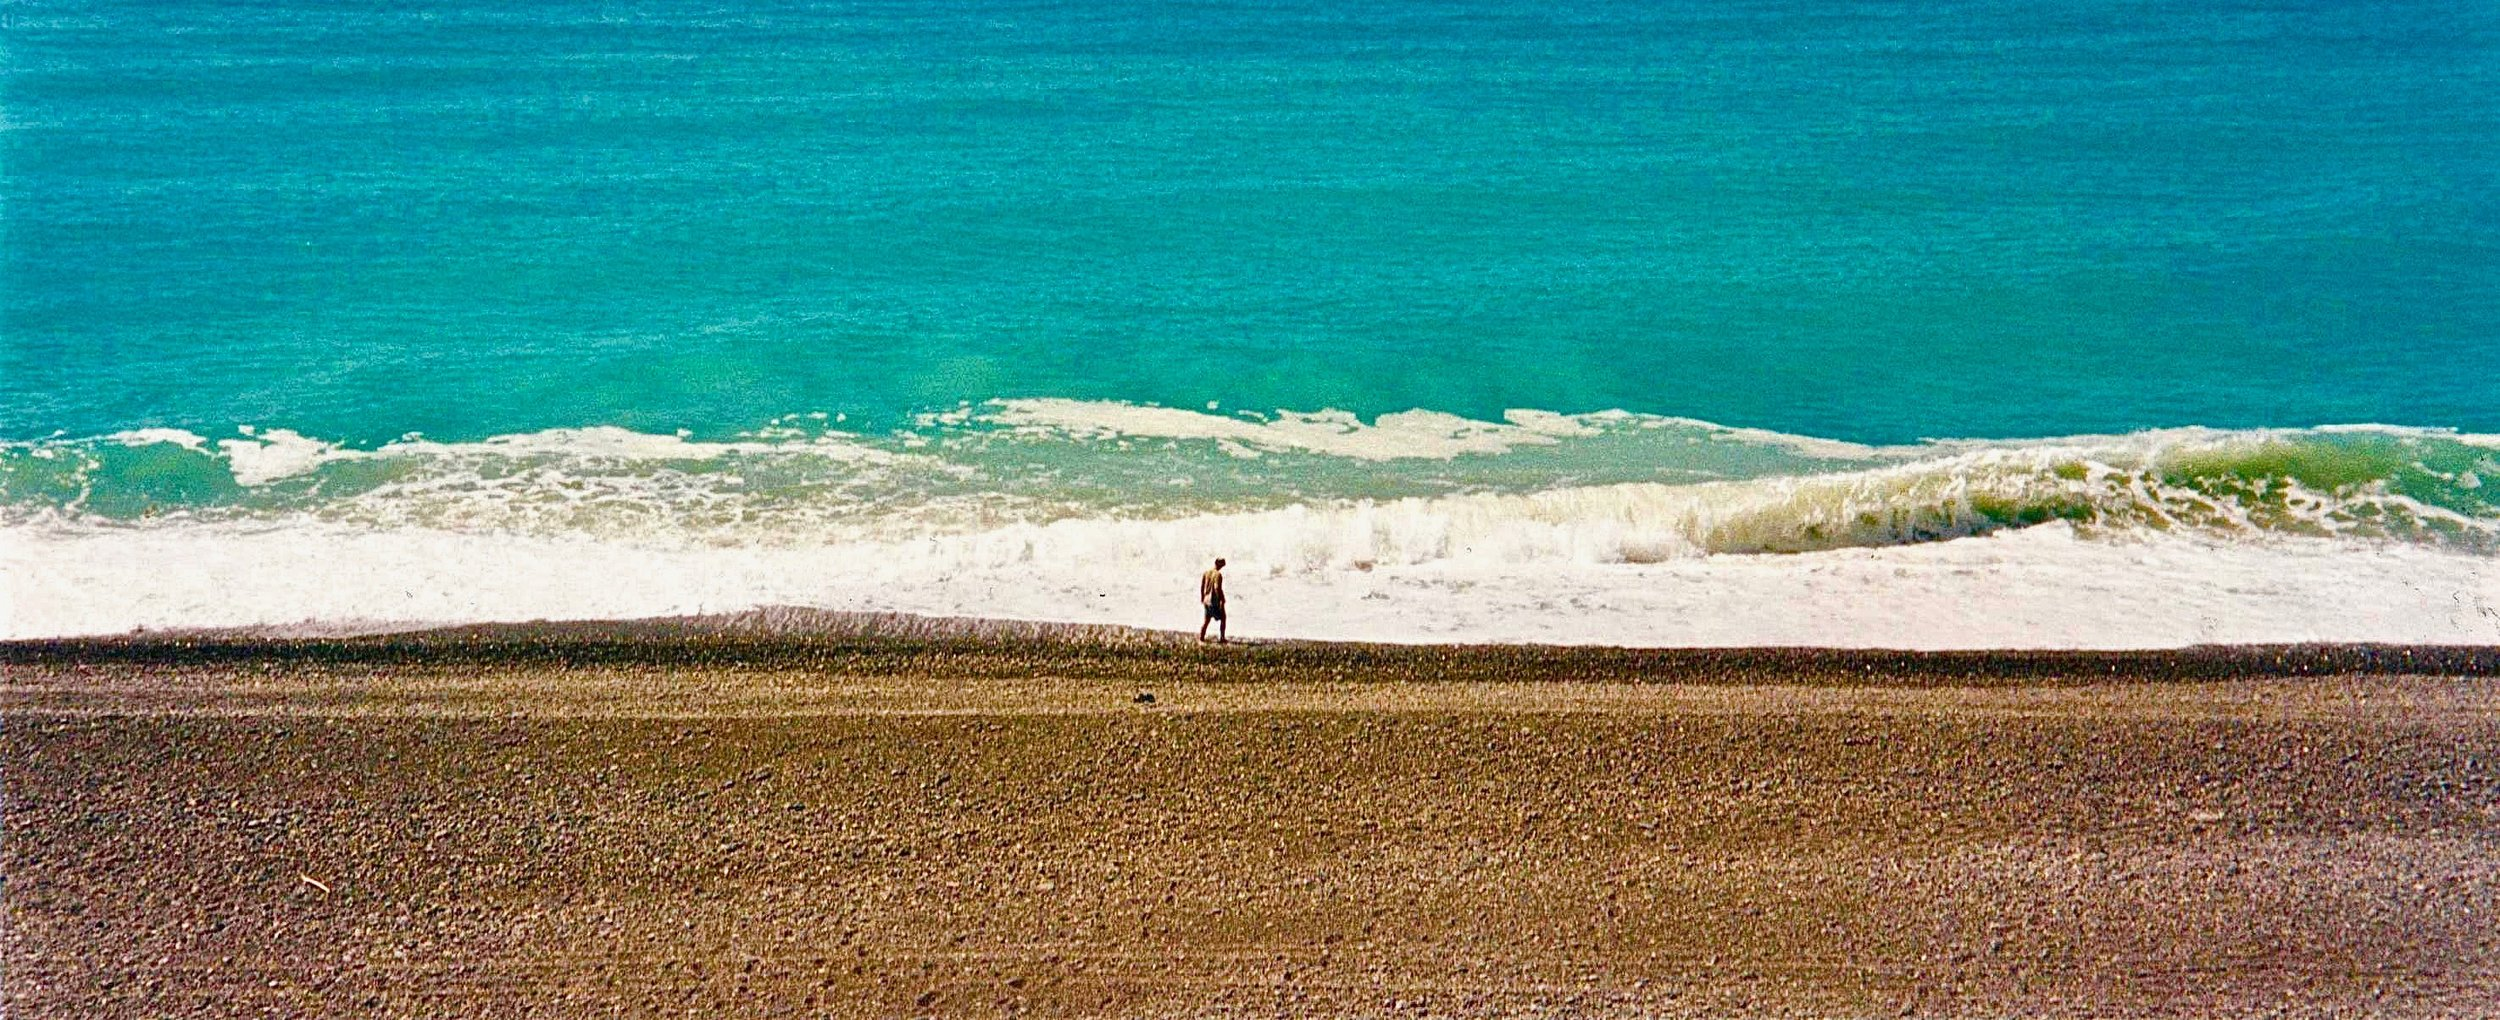 NZ jason walking on beach wide shot 2.jpg